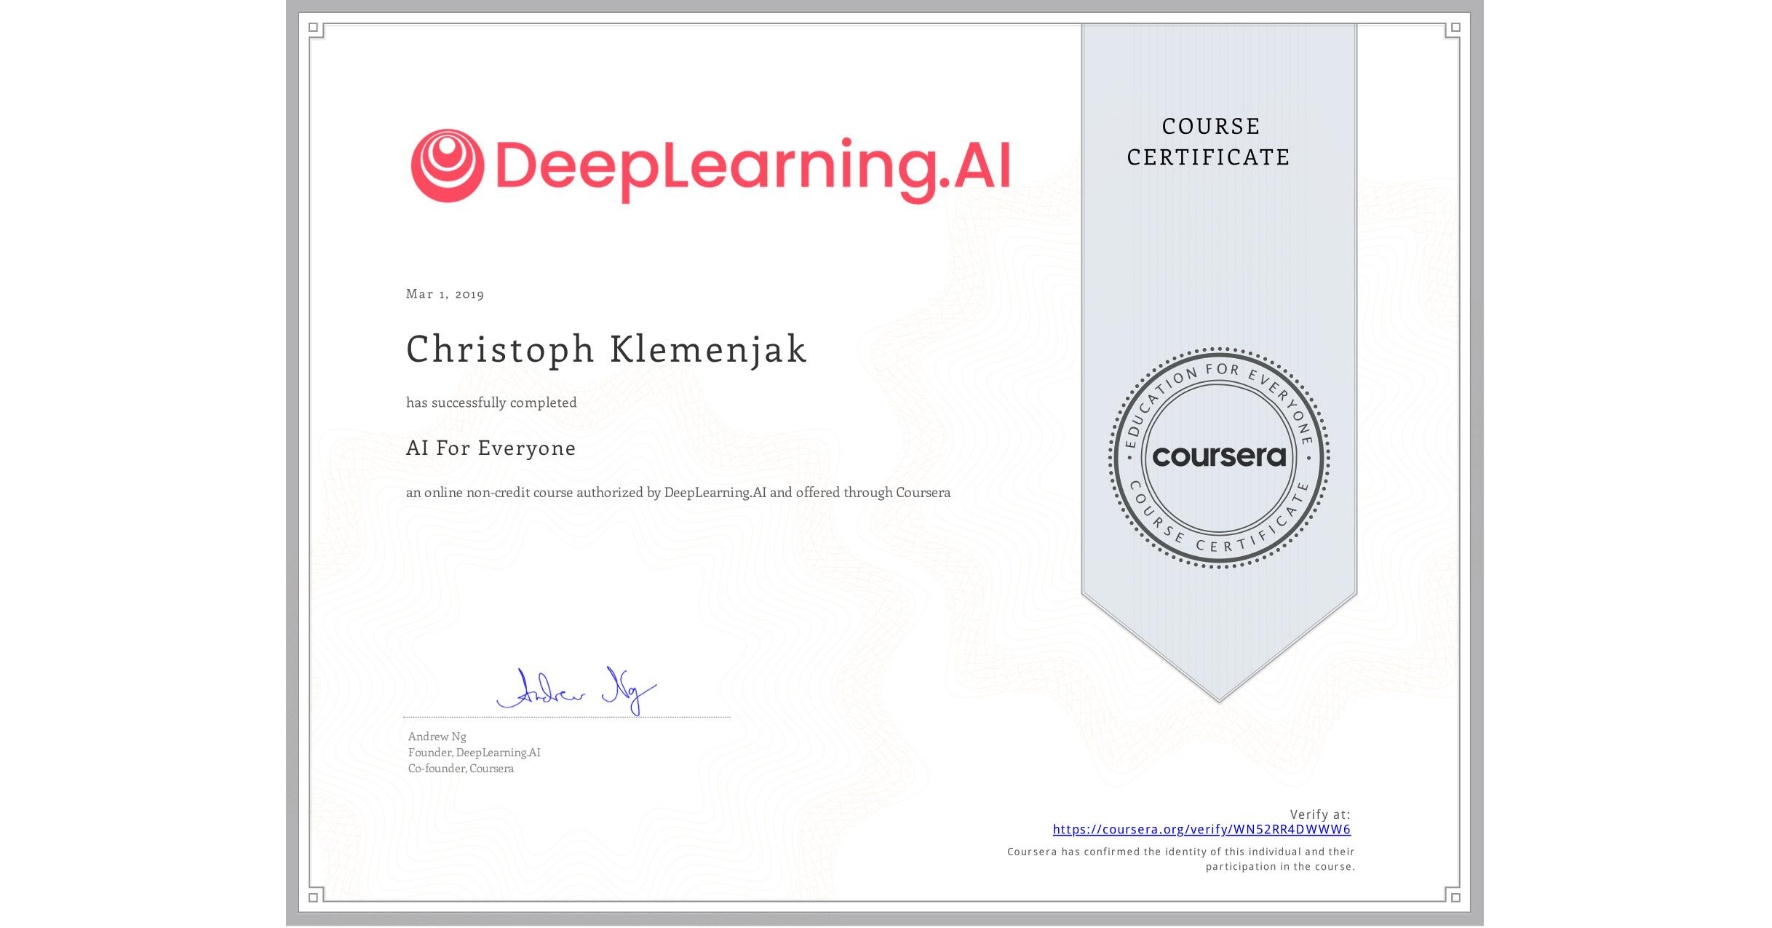 View certificate for Christoph Klemenjak, AI For Everyone, an online non-credit course authorized by DeepLearning.AI and offered through Coursera